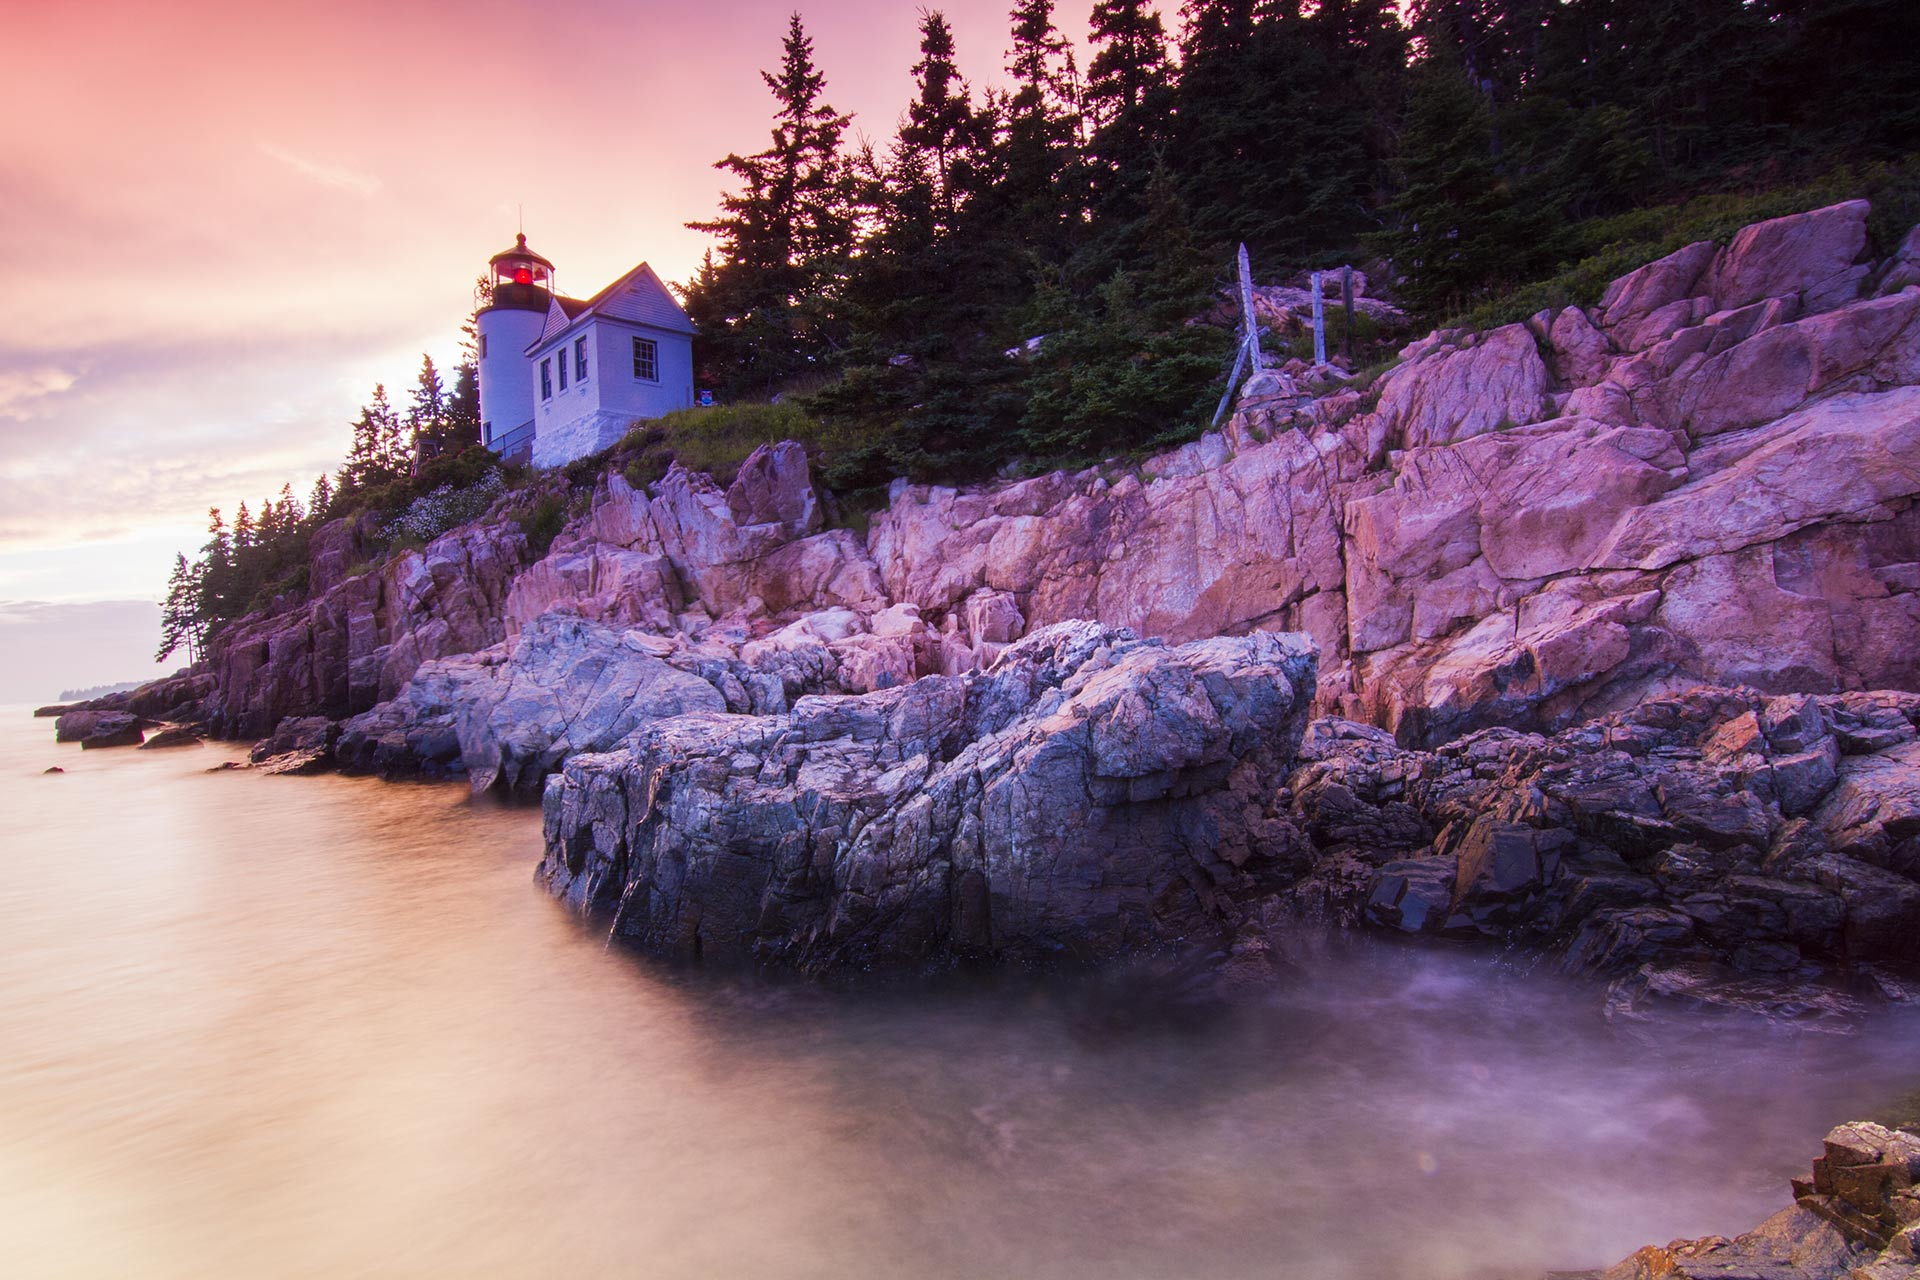 Acadia National Park in Maine, USA.